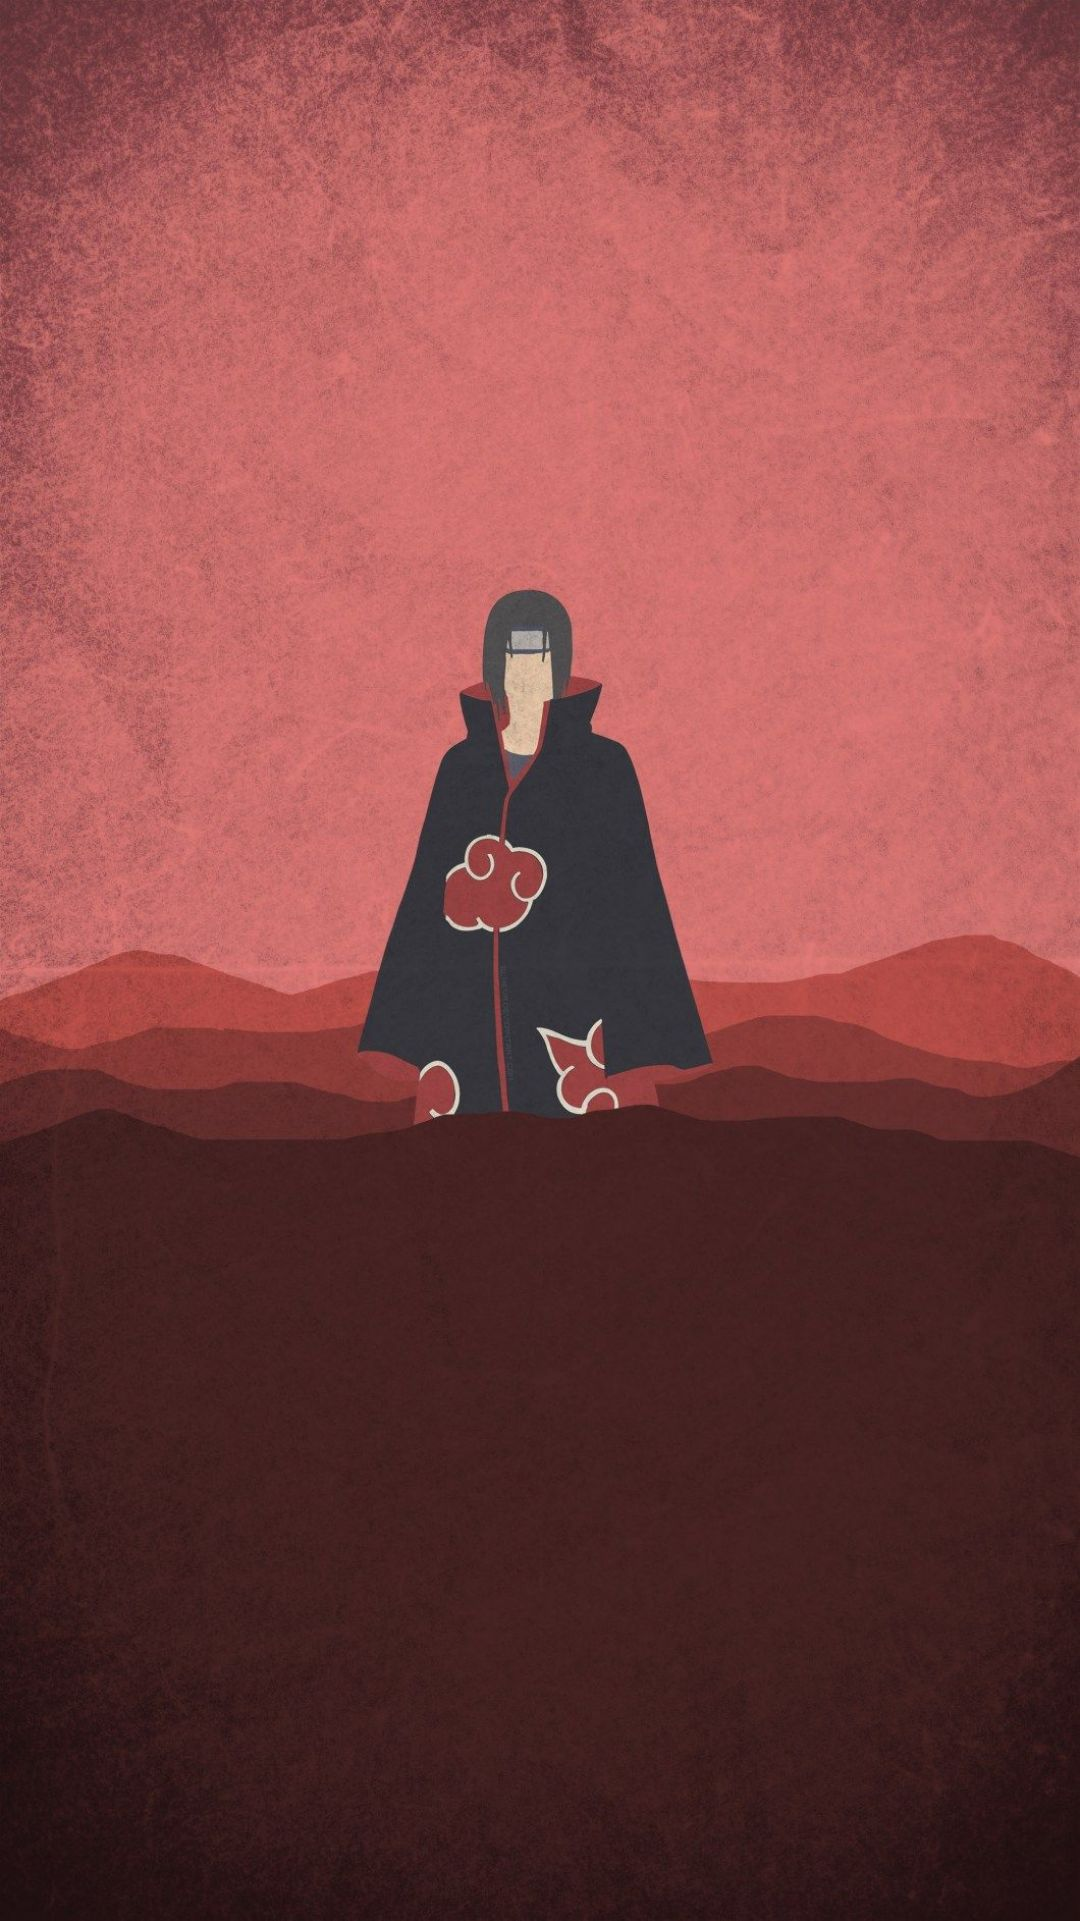 50 Itachi Uchiha Android Iphone Desktop Hd Backgrounds Wallpapers 1080p 4k 1080x1921 2020